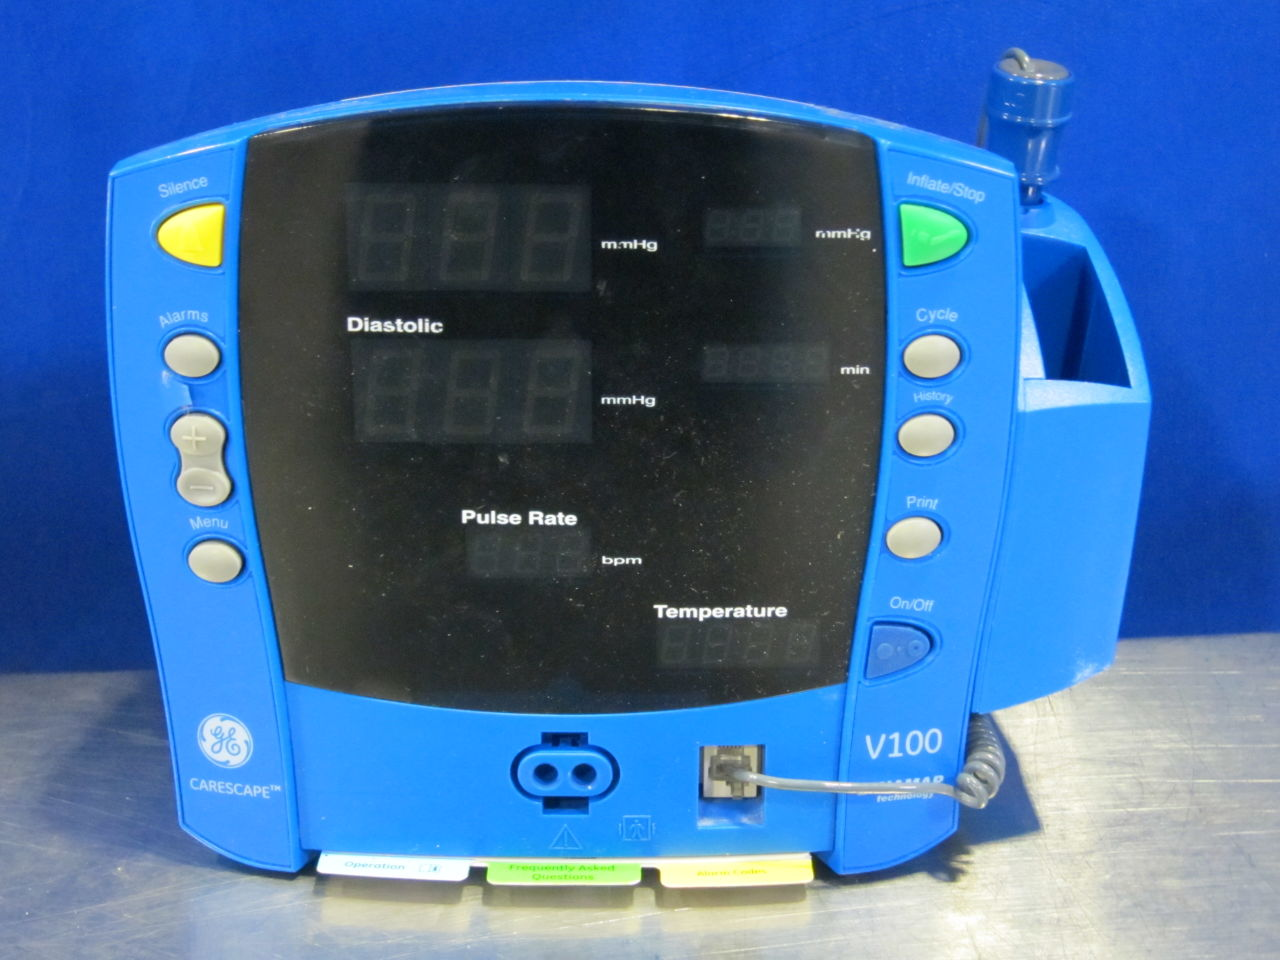 GE Carescape V100 Monitor